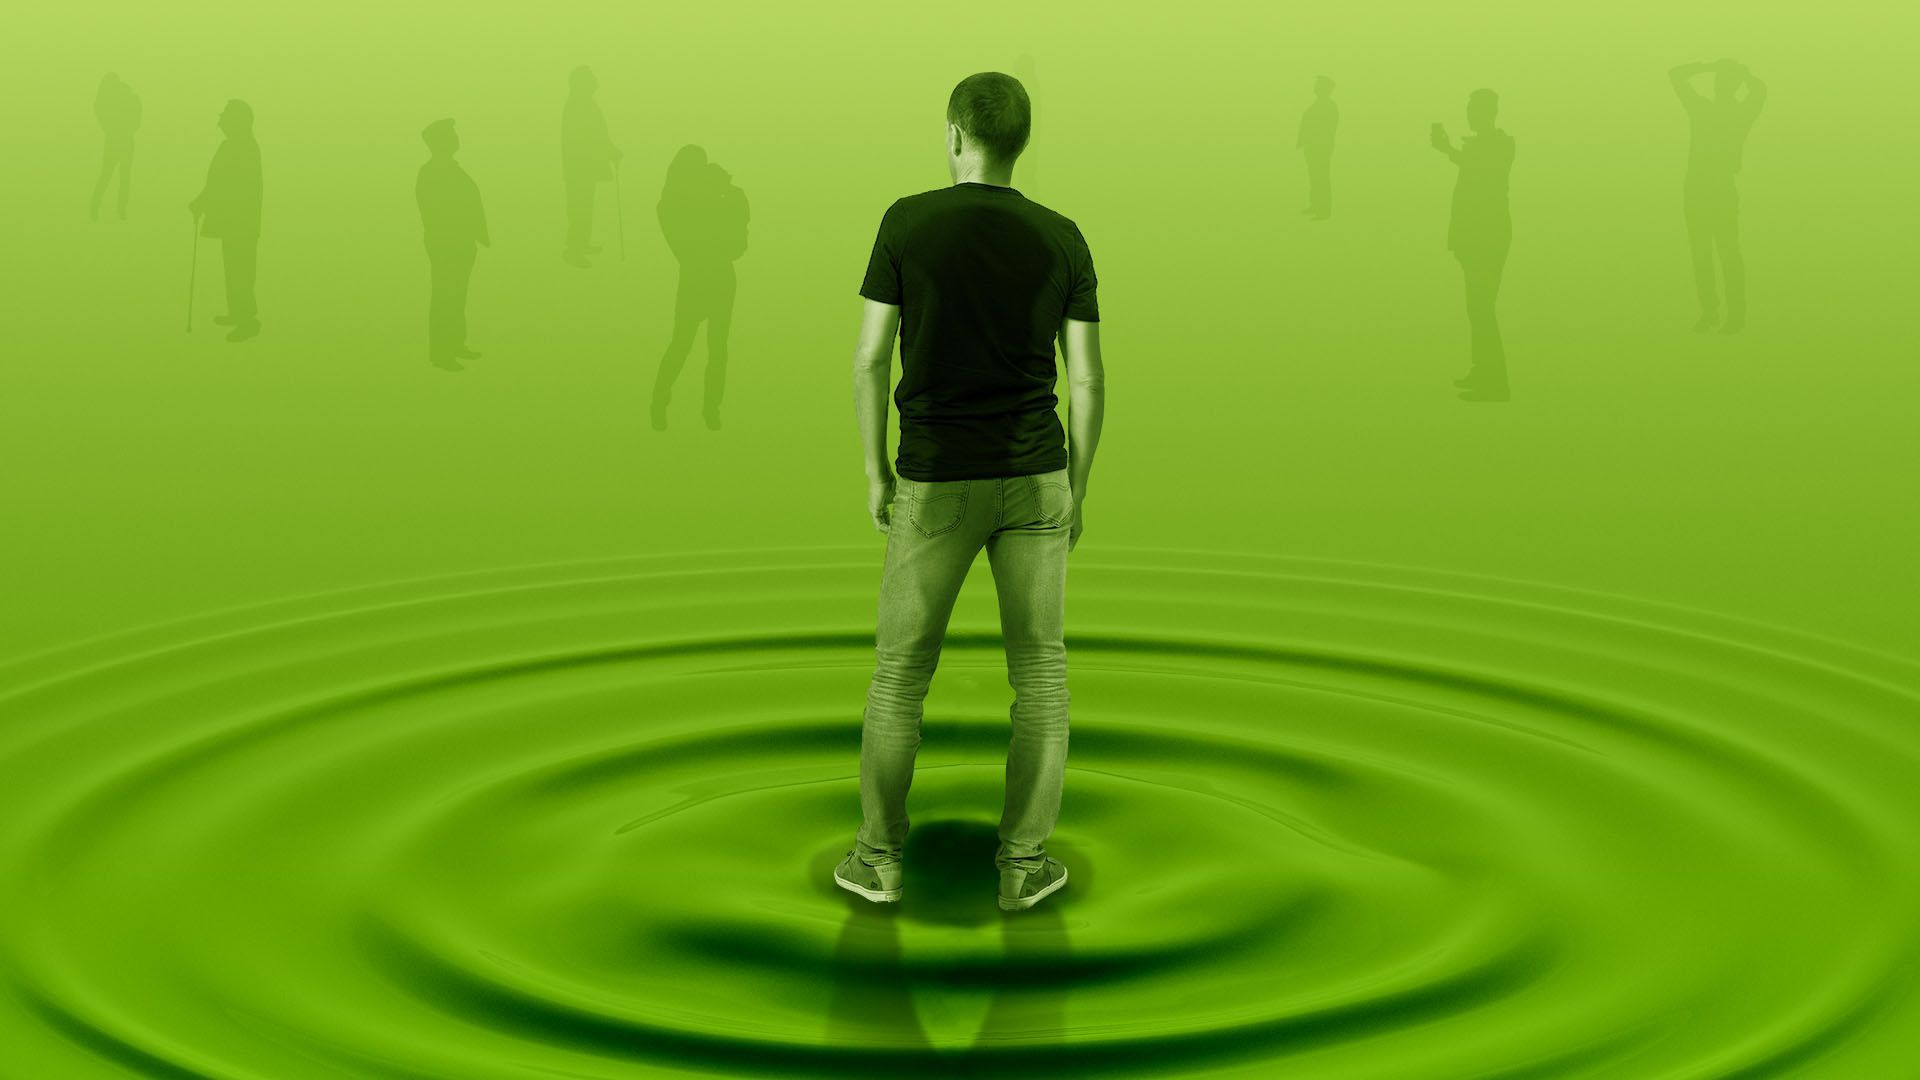 Illustration of a person from behind standing on a spreading ripple going out to figures in the distance